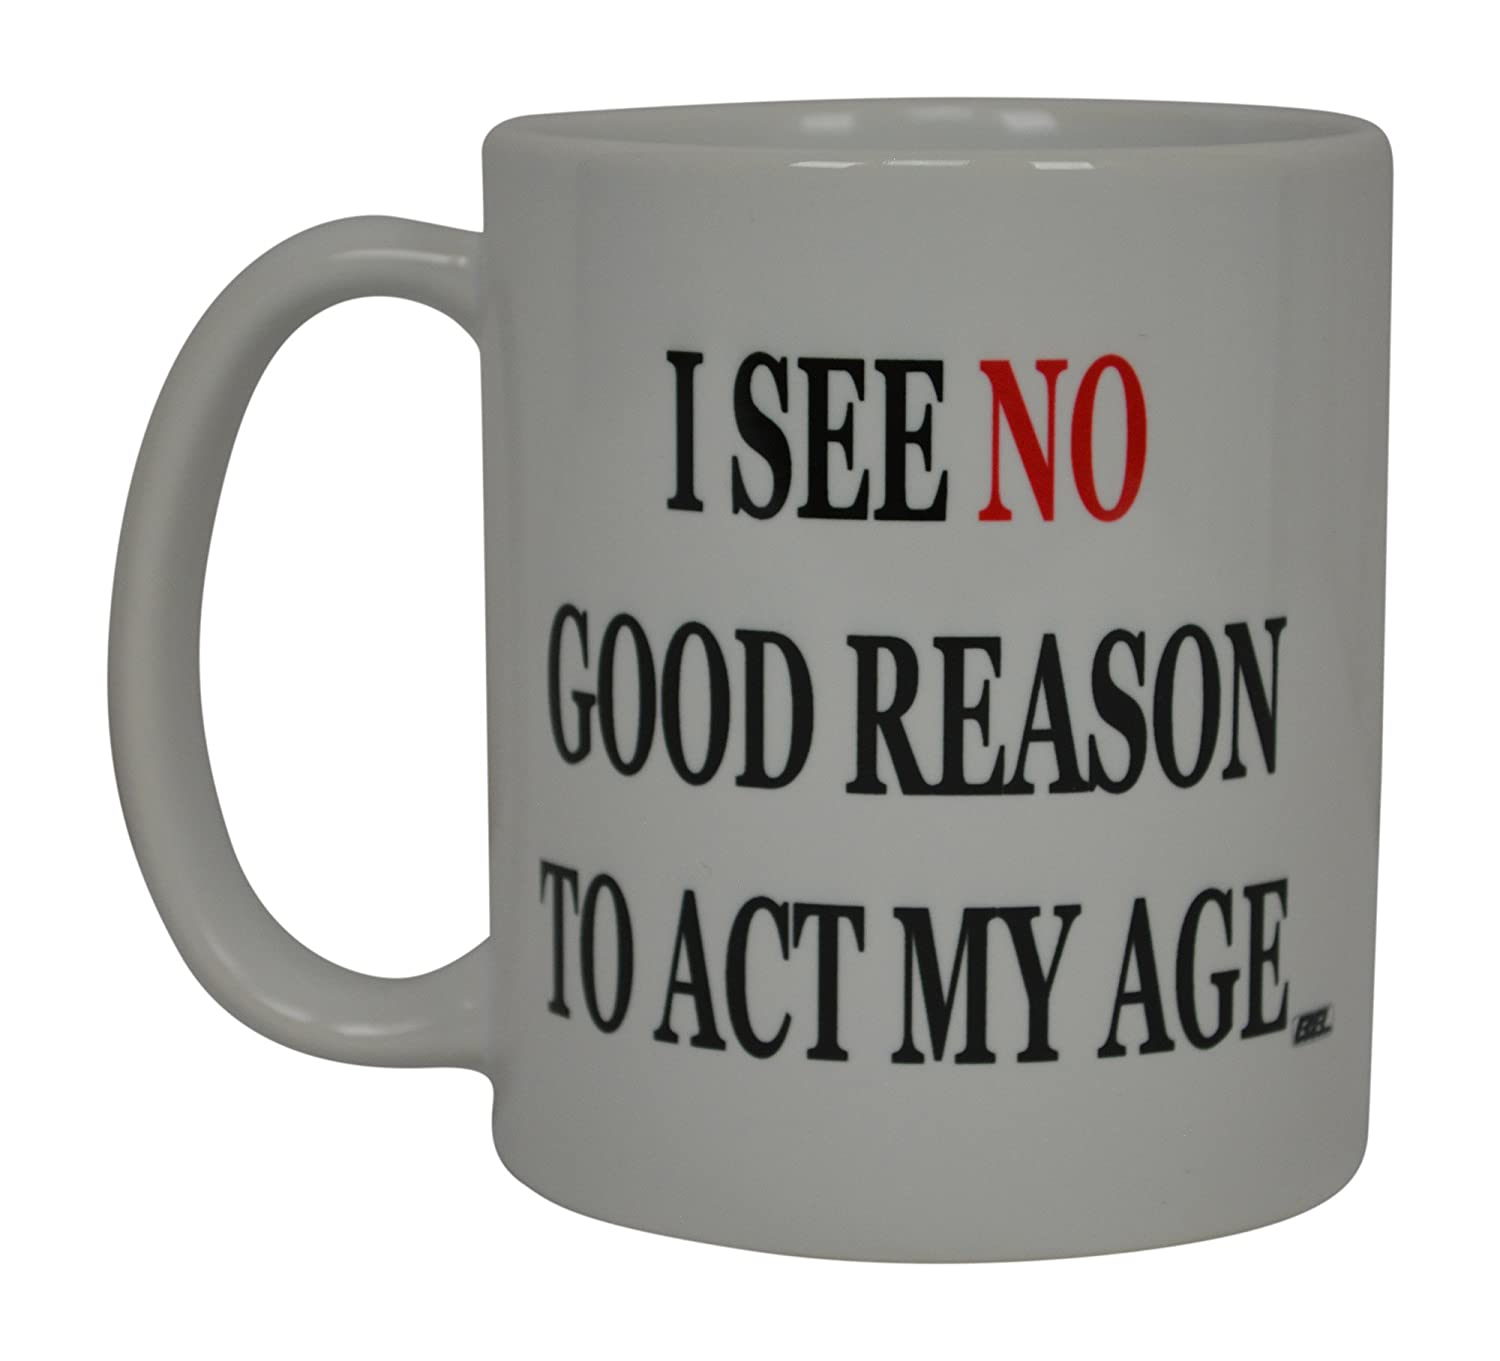 Funny Coffee Mug I See No Good Reason To Act My Age Sarcastic Novelty Cup Joke Gift Idea For Men Women Office Work Retirement